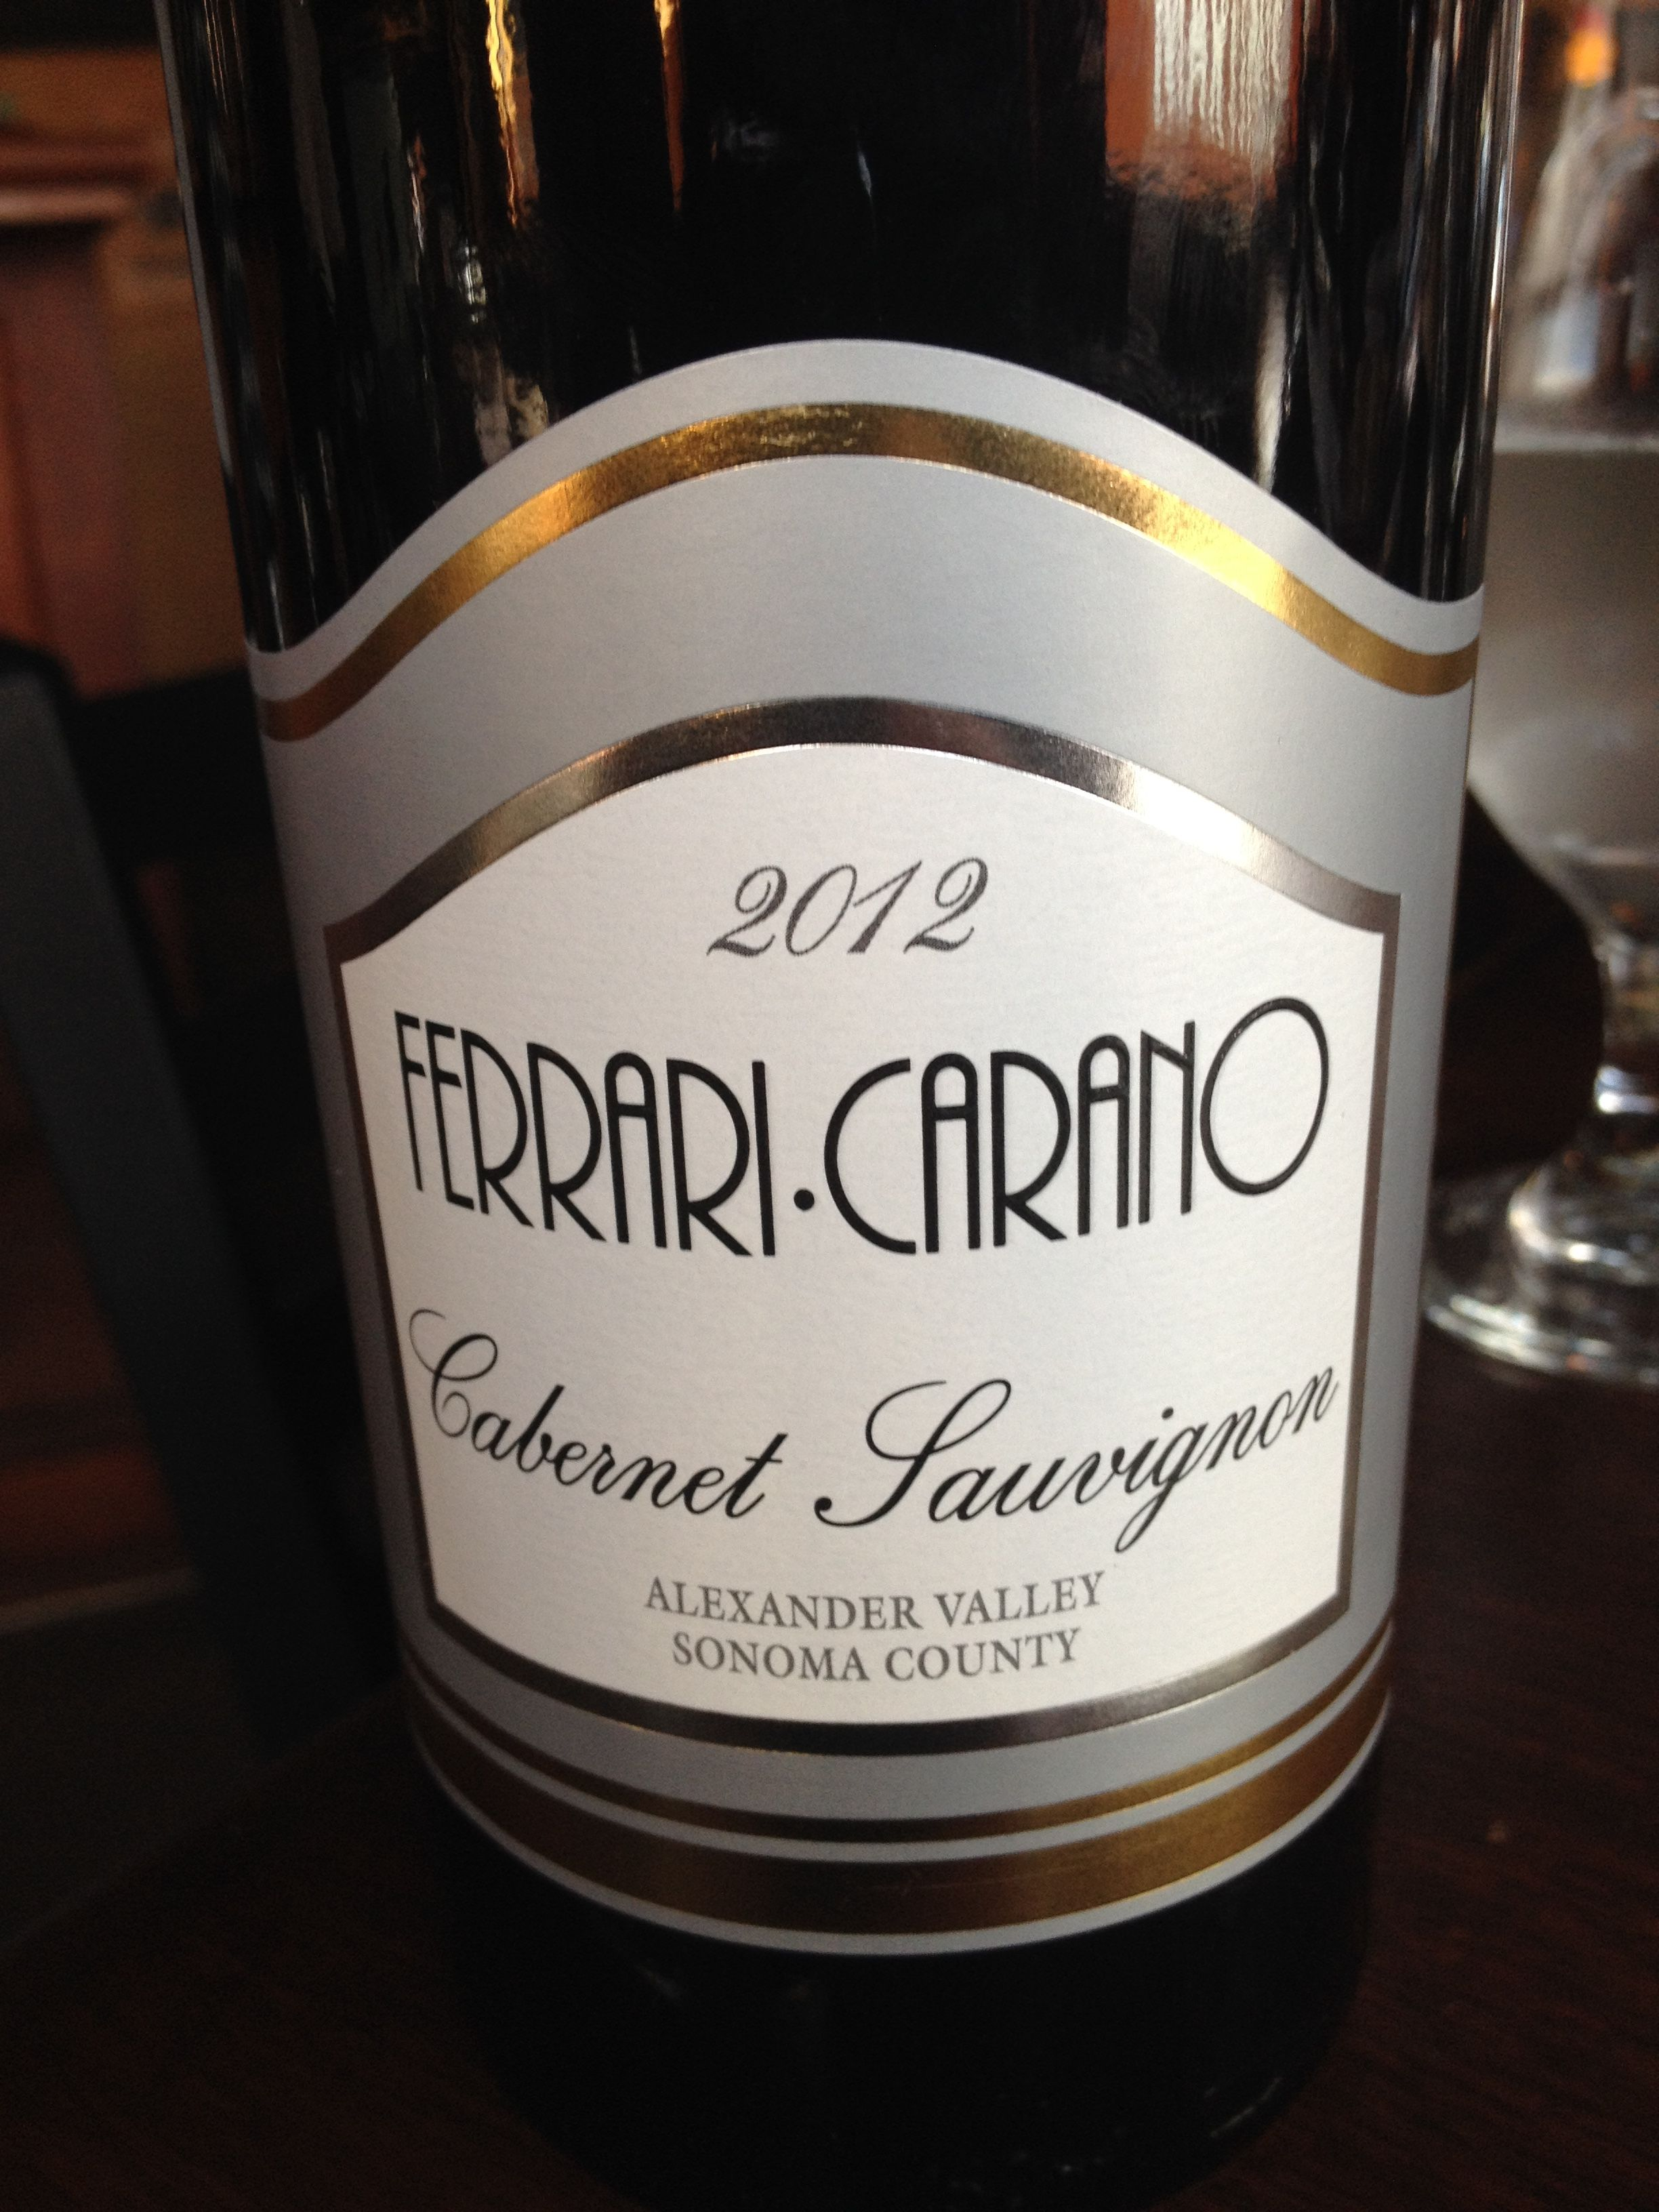 2012 Ferrari Carano Cabernet Sauvignon   Alexander Valley   Intense Ruby  Red With Purple Reflections. Pepper And Dark Fruits Bounce Out Of The Glass  With A ...